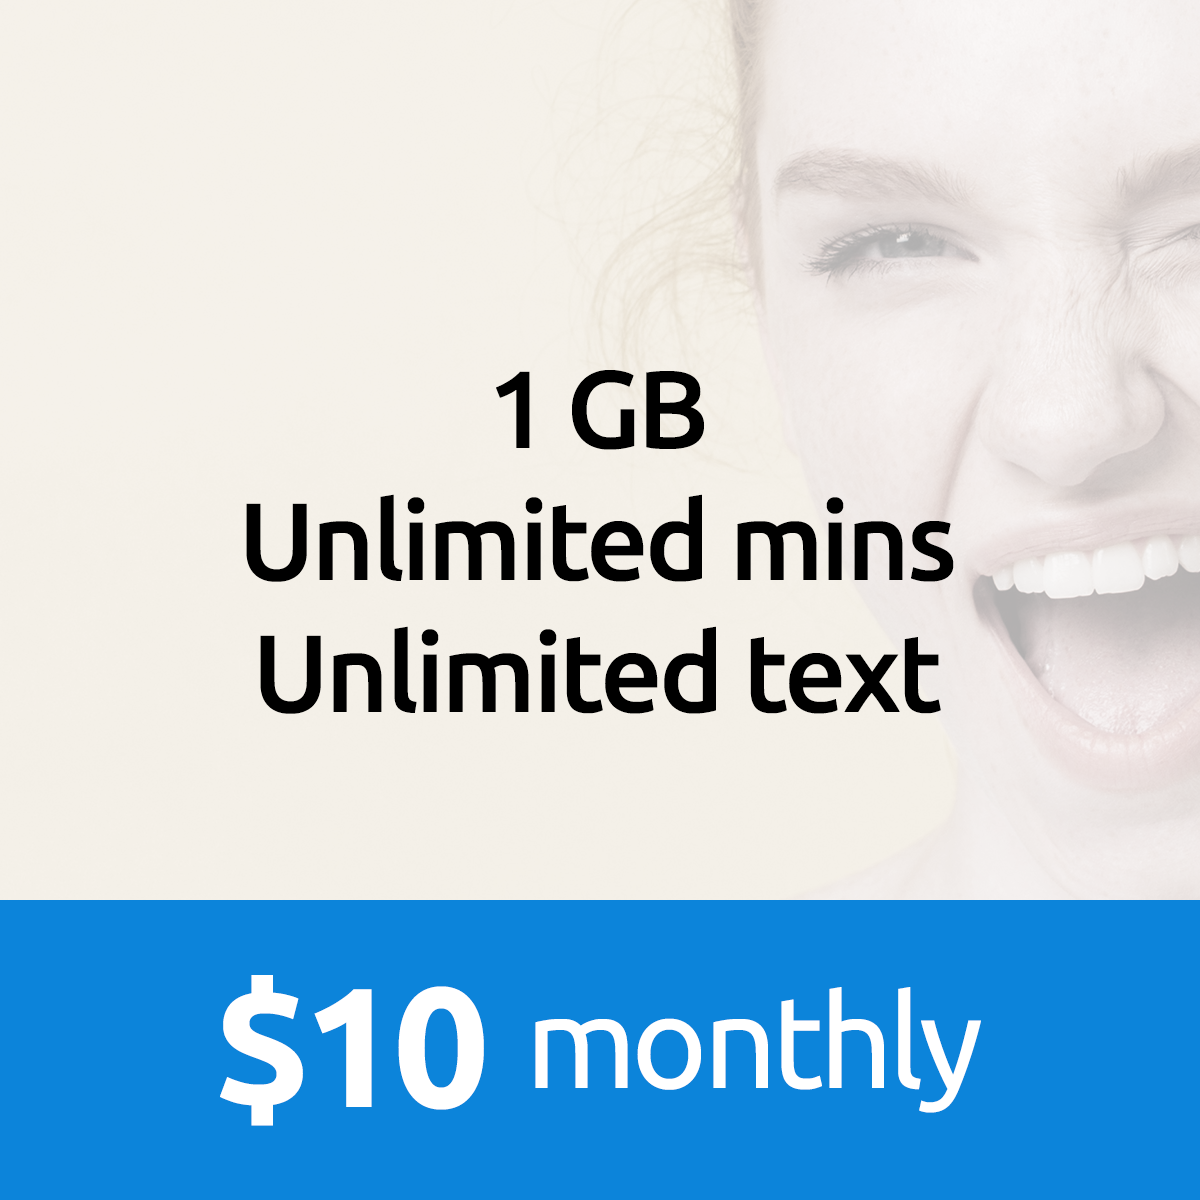 Overpriced wireless is over! New Irresistible Plans Are Here